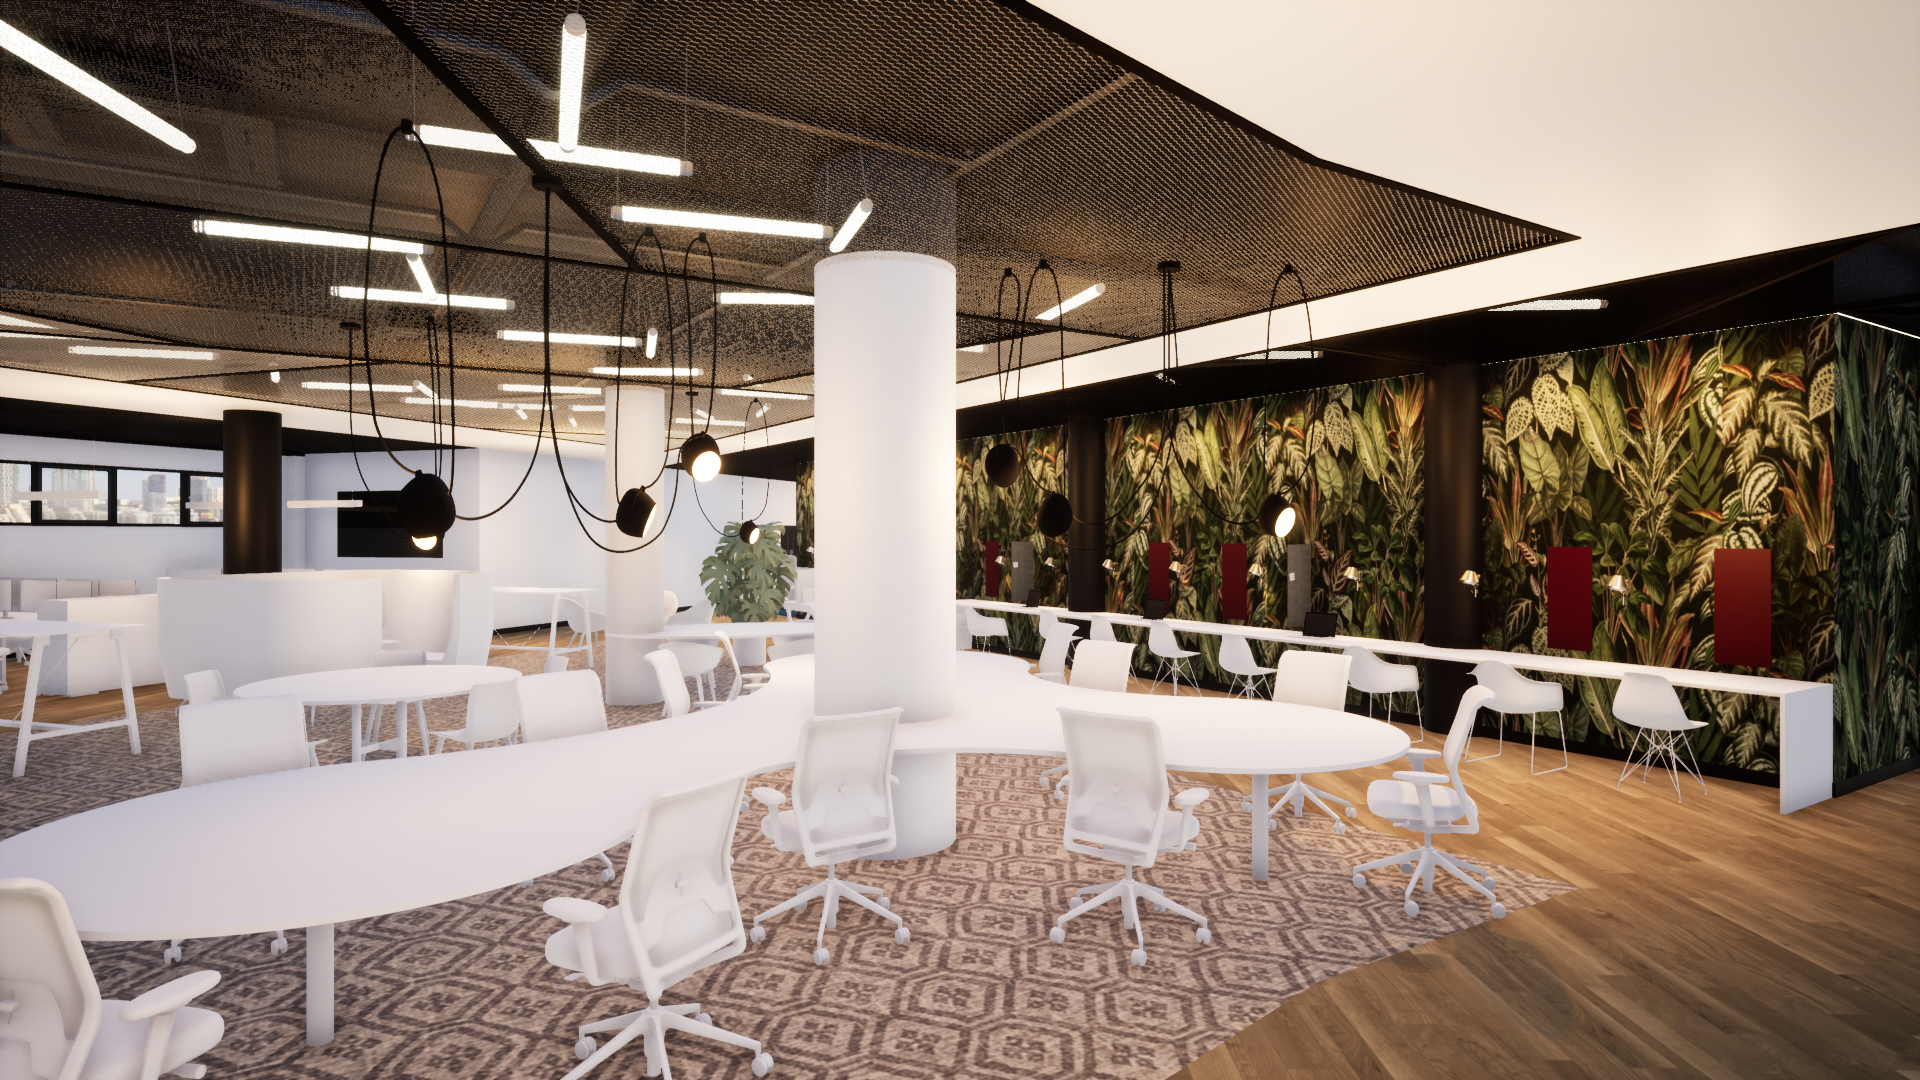 Co-working Space - A glimpse at a new Co-working space for tech start ups - watch this space!